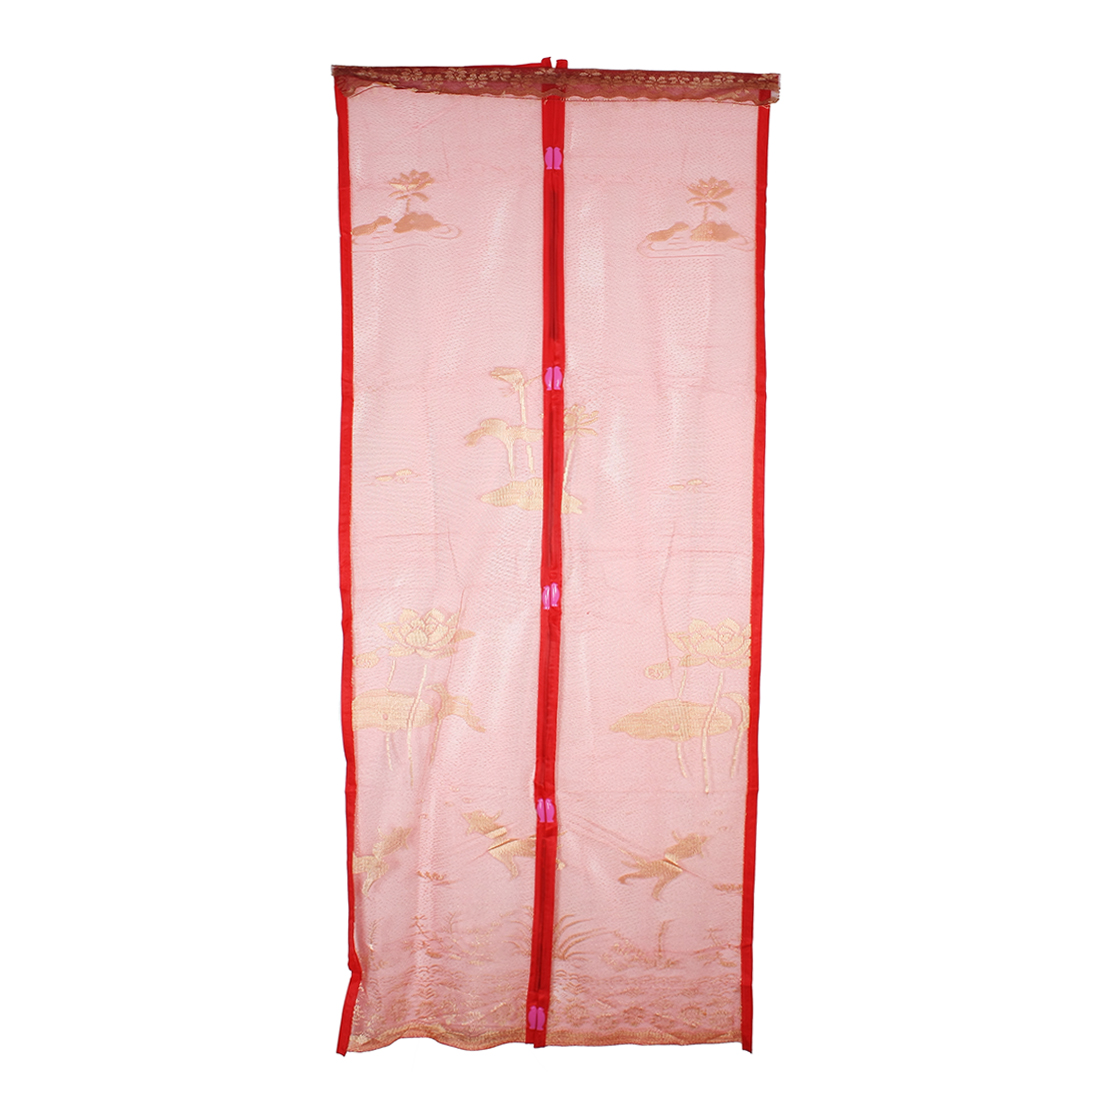 Flower Magnetic Fastening Magic Curtain Soft Mosquito Screen Door Mesh Red